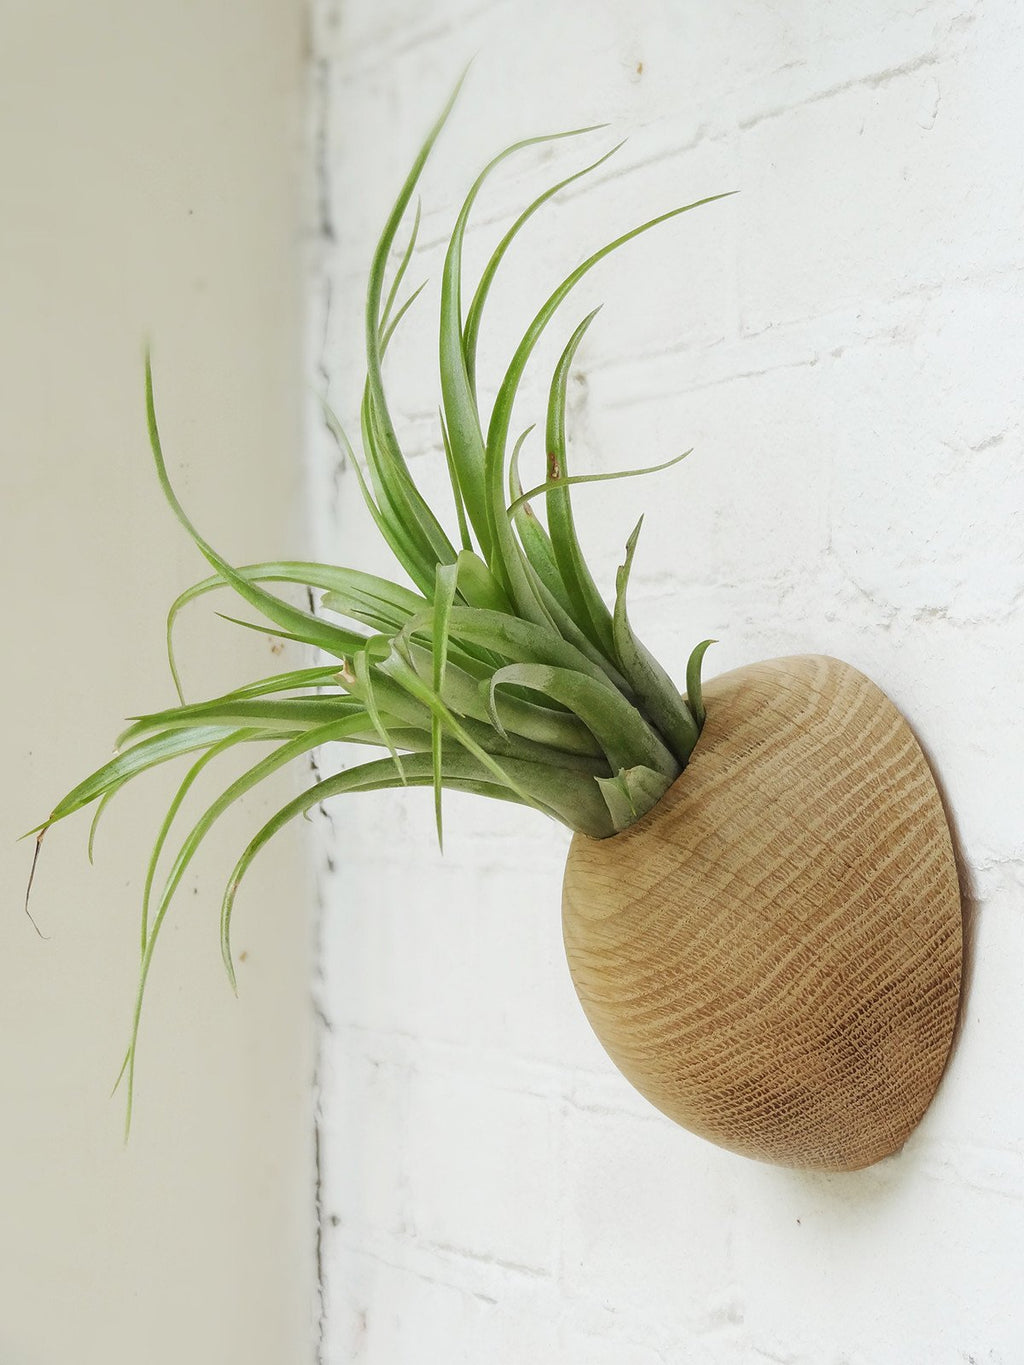 Picture of hemisphere wooden holder with Brachycaulos airplant. Side view